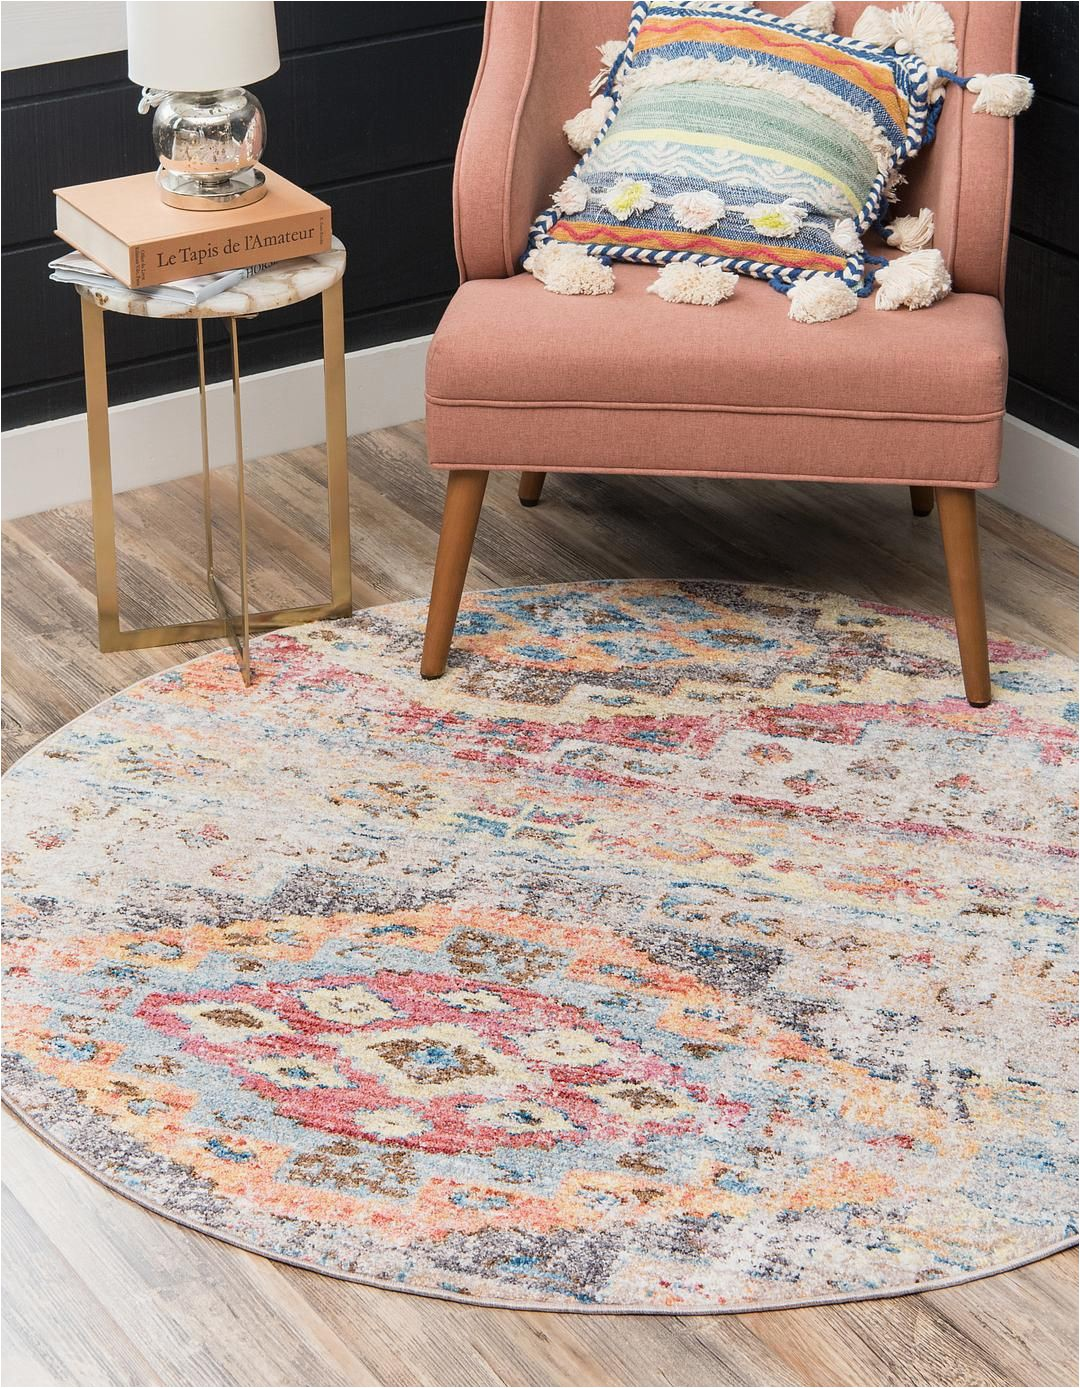 Bed Bath and Beyond Round area Rugs Multi Unique Loom 5 X 5 Basilica Round Rug